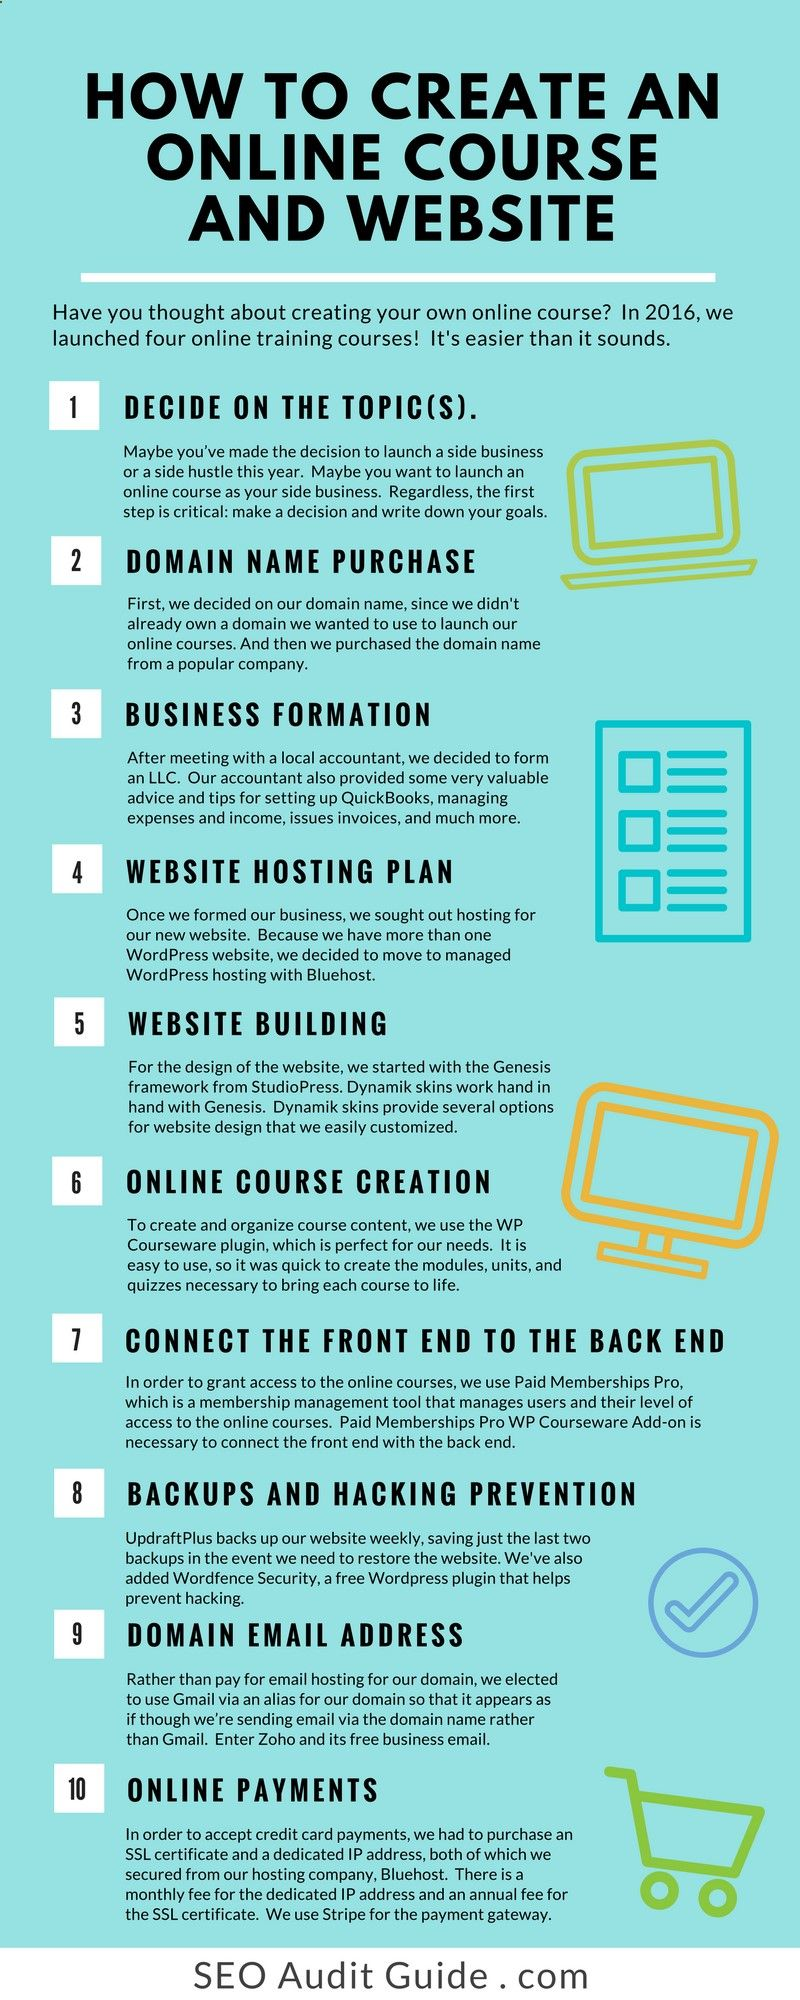 If You Re Ready To Create An Online Course On Your Own Domain Rather Than Using A Service Li Online Course Design Create Online Courses Online Course Creation